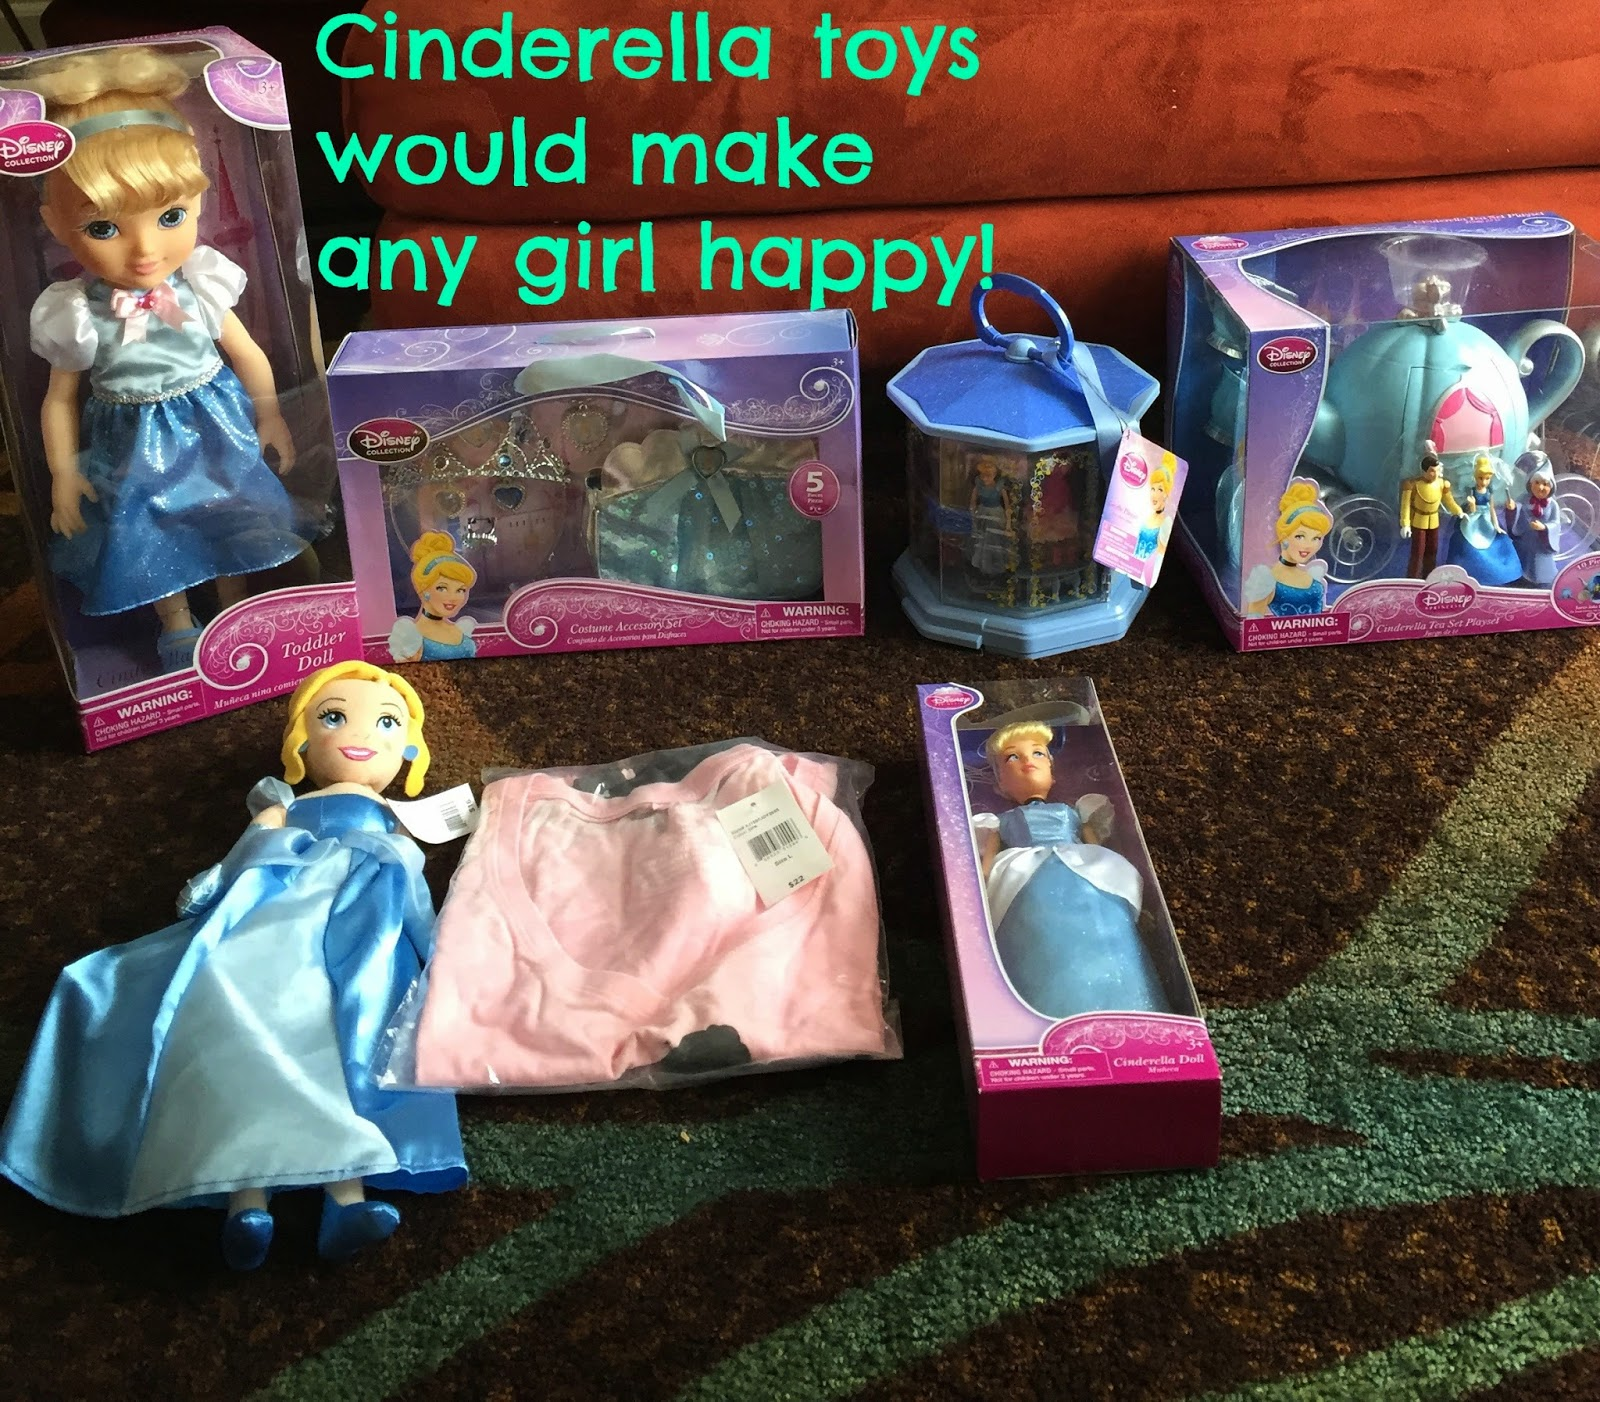 c25cffa89a64b All items were designed exclusively for JCPenney and are sold in the  enchanting Disney shop inside the store. Go ahead and let your child make  everyday ...